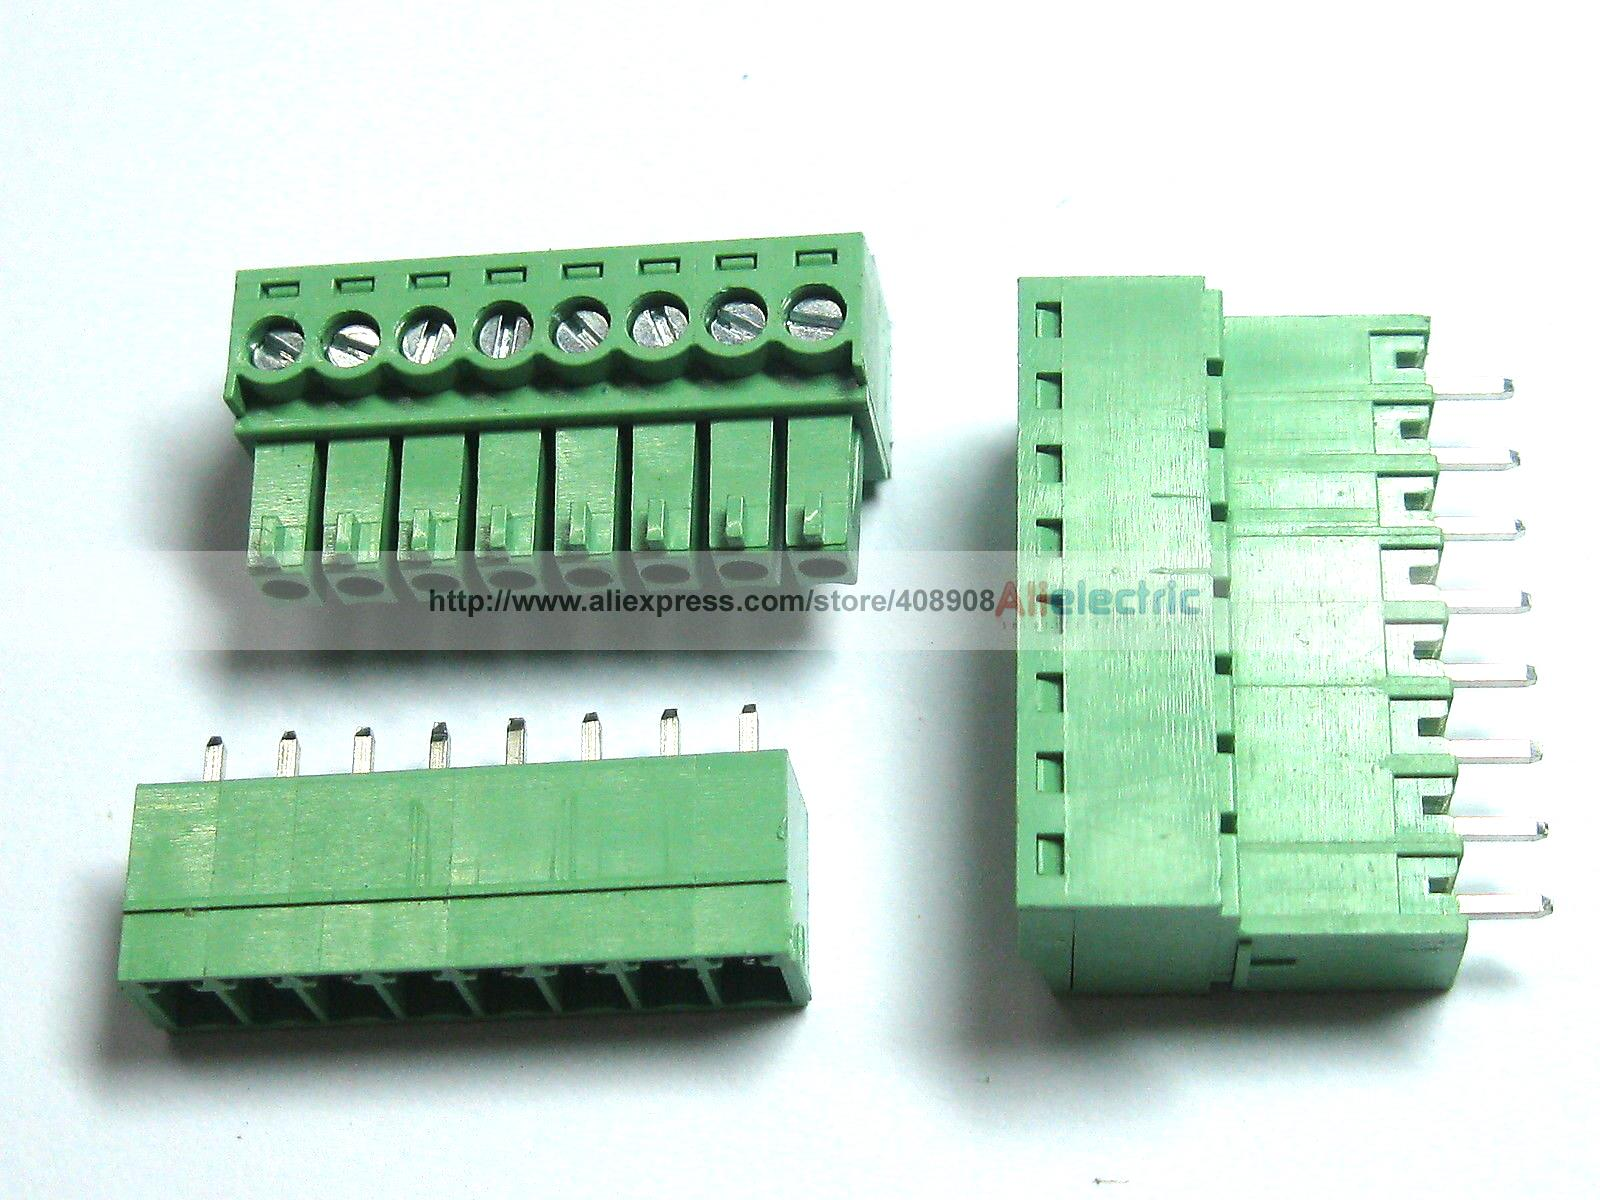 цена на 12 Pcs Screw Terminal Block Connector 3.5mm 8 Pin Way Green Pluggable Type